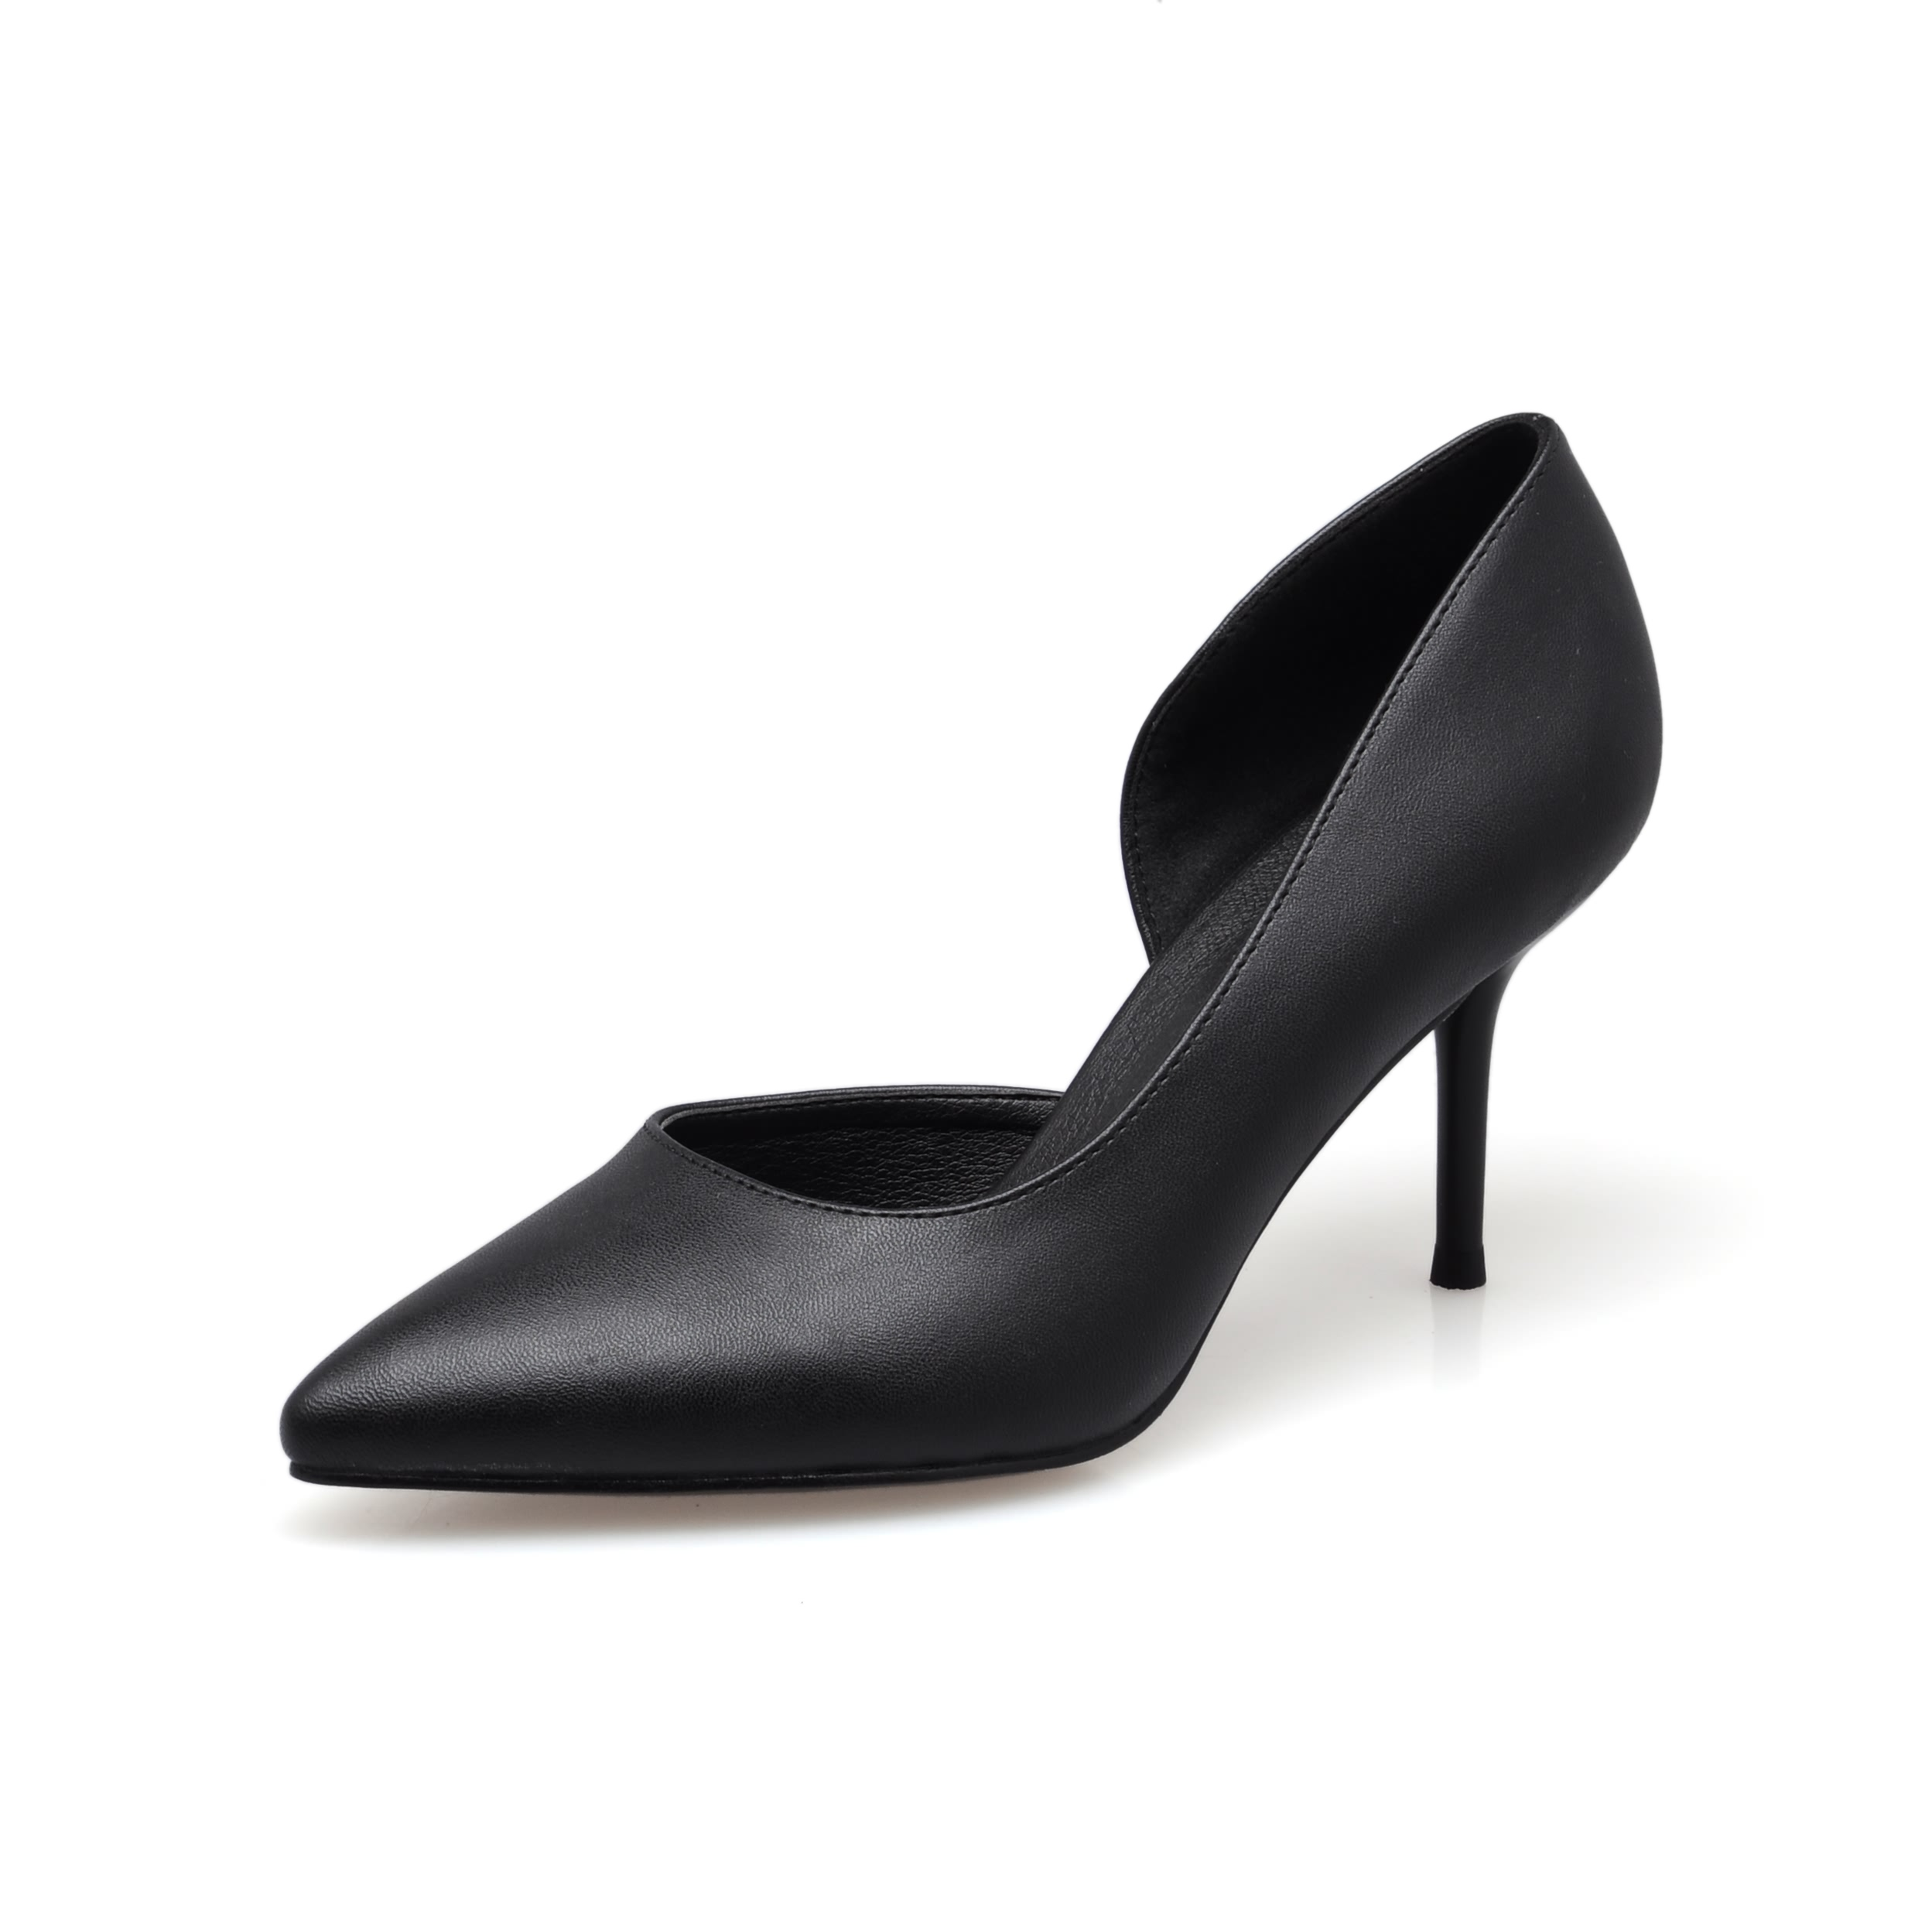 New Spring Summer Red High Heels Good Quality Pointed Toe Women Lady Solid Simple Casual Genuine Leather Pumps Shoes SMYBK-063 new hot spring summer high quality fashion trend simple classic solid pleated flats casual pointed toe women office boat shoes